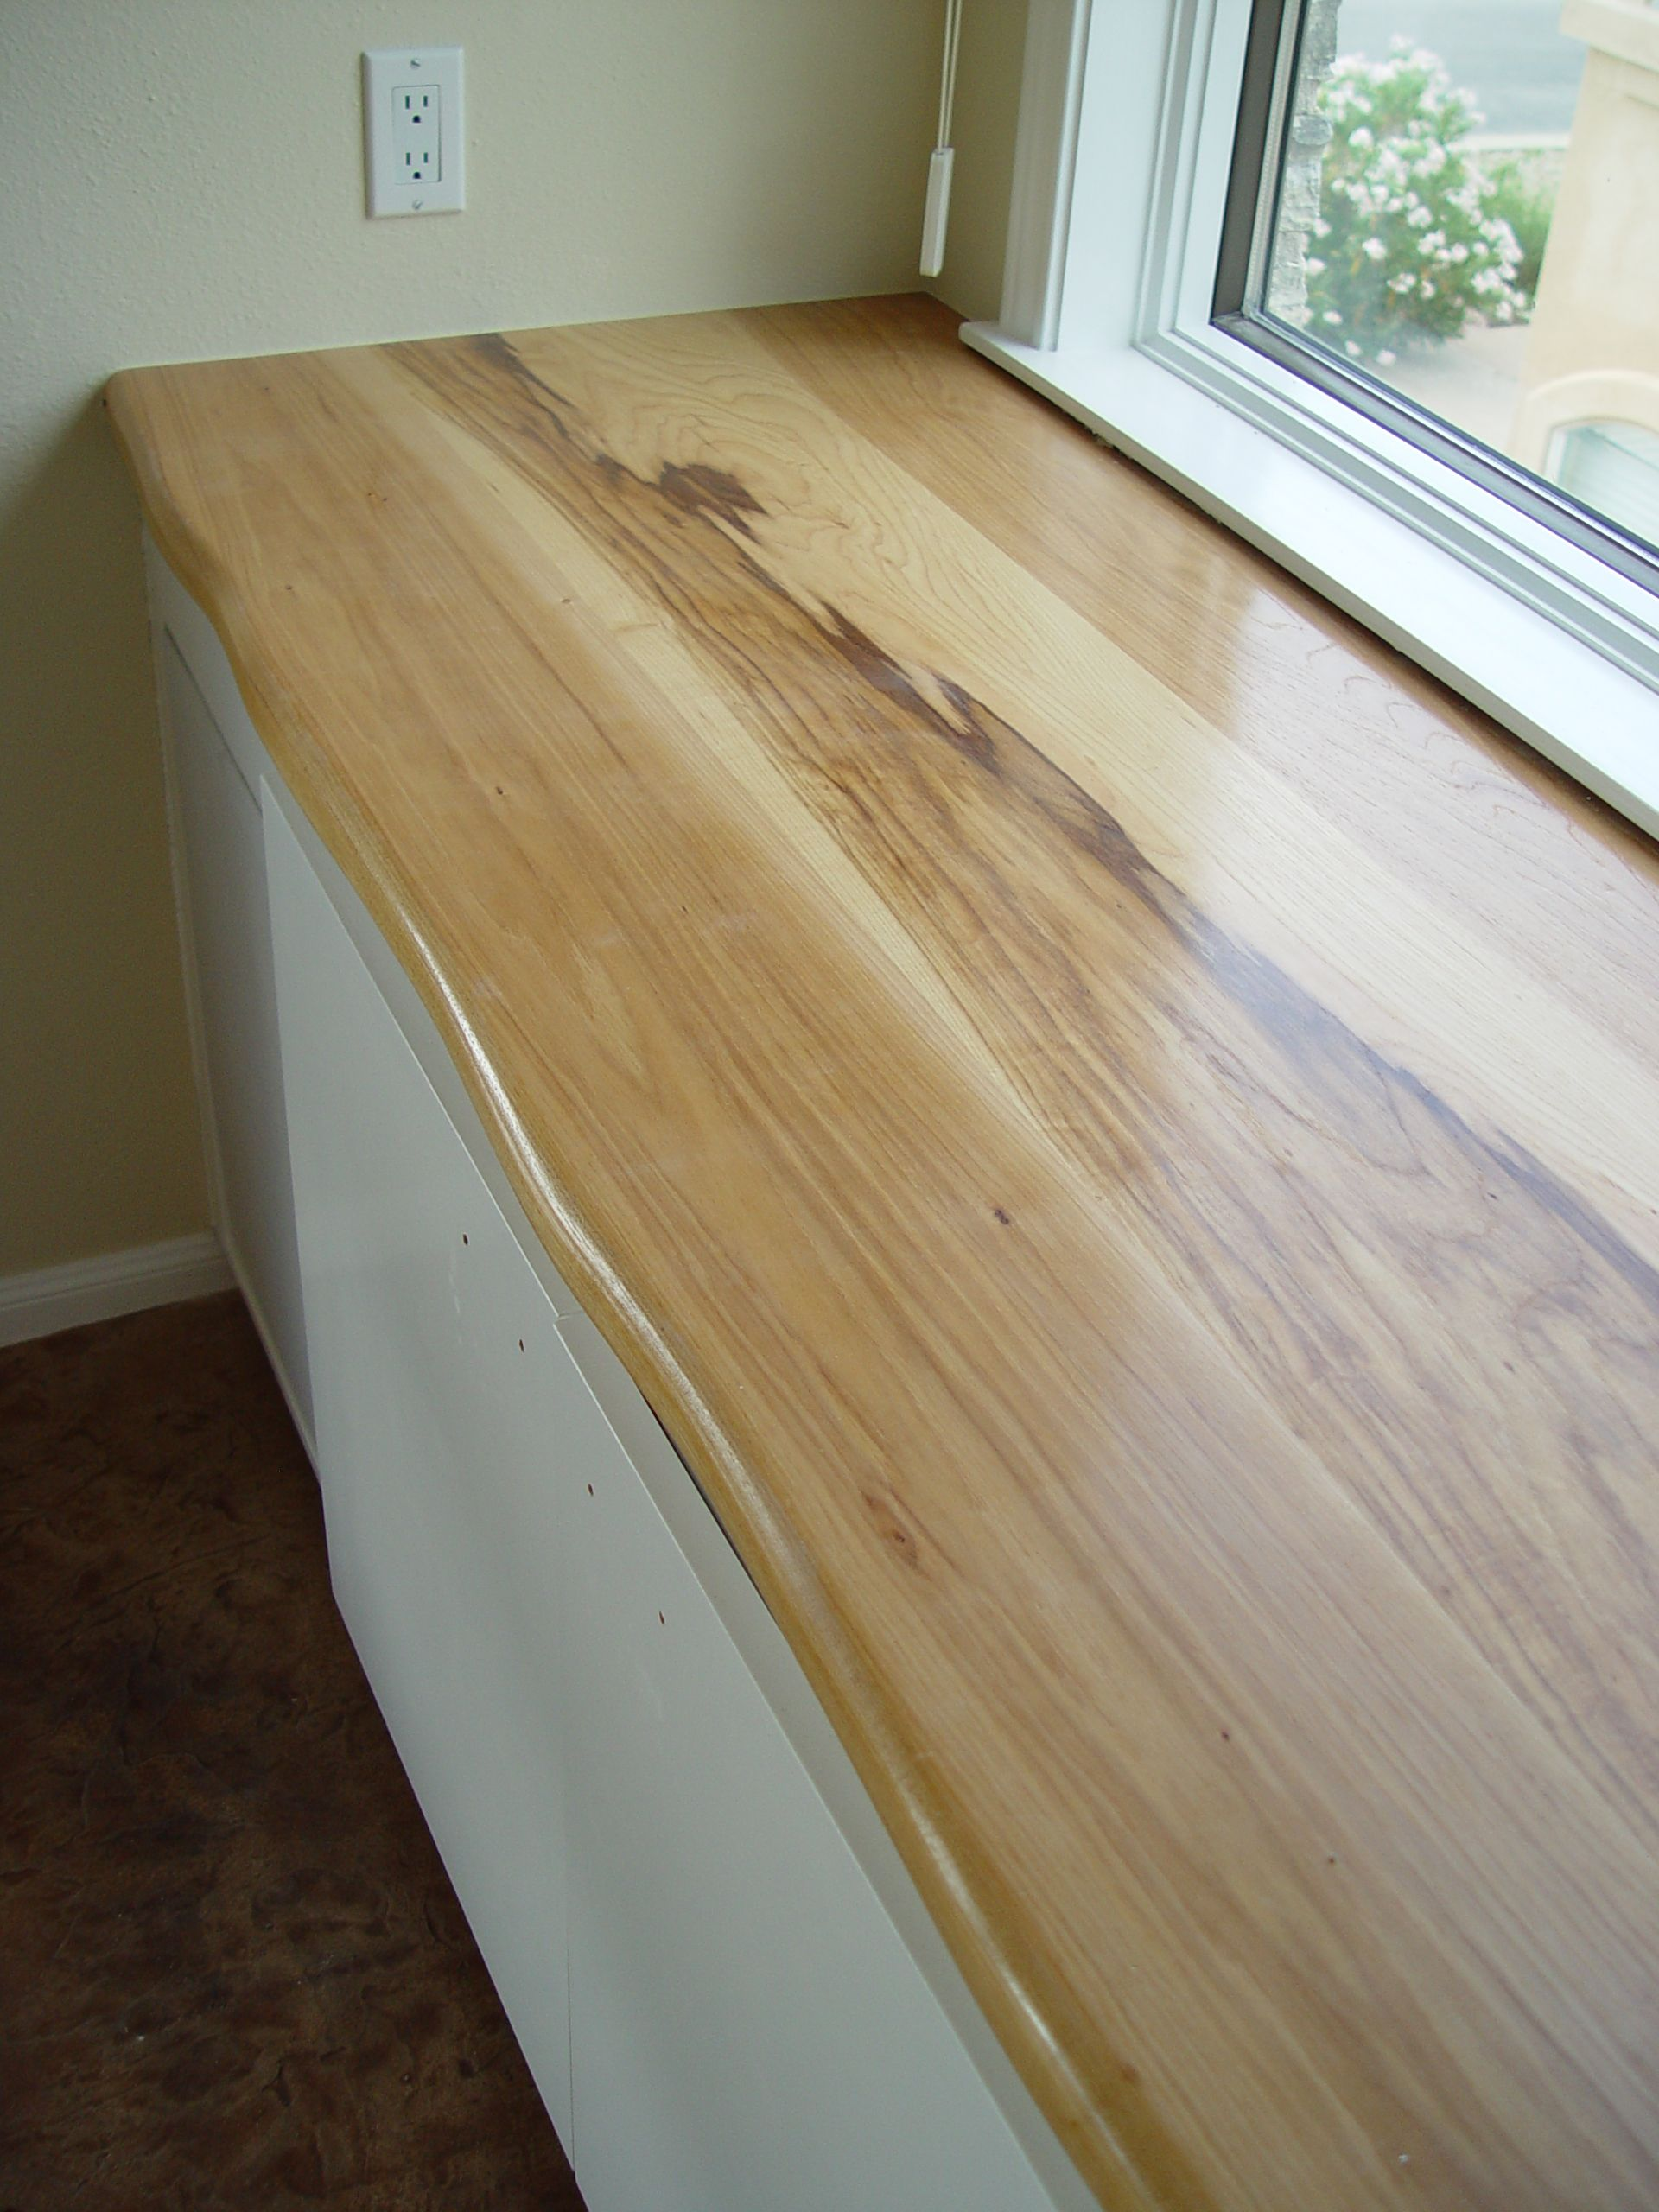 Custom solid wood face grain Pecan counter top with natural wane ...